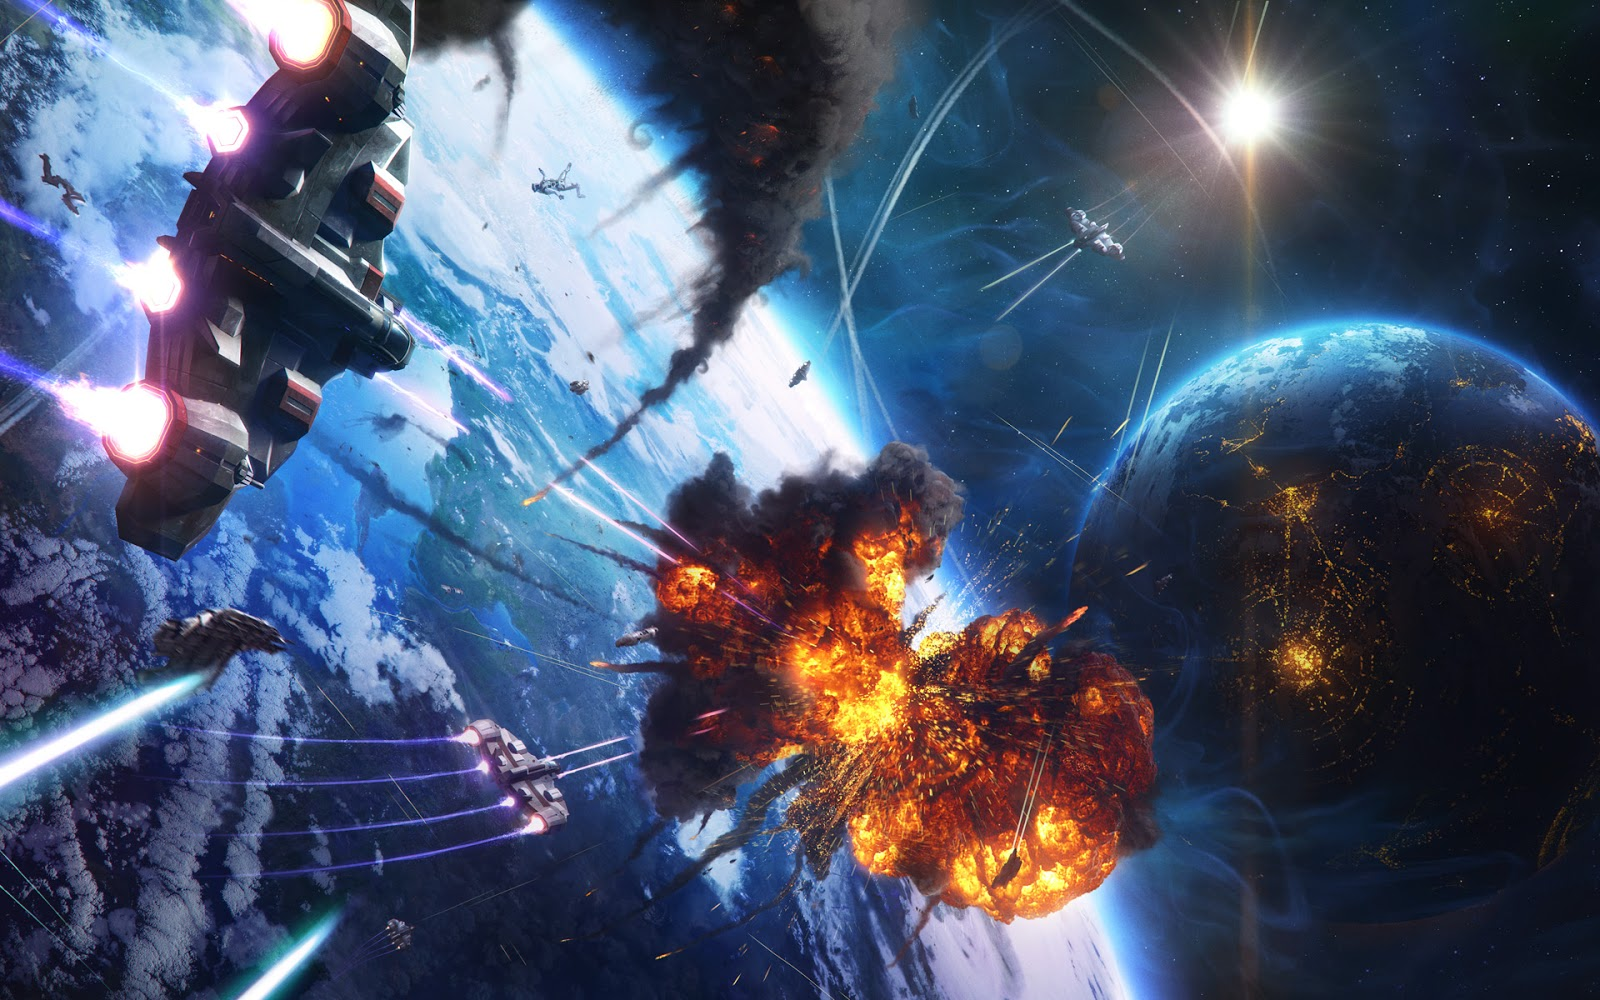 download space war wallpaper which is under the space wallpapers 1600x1000